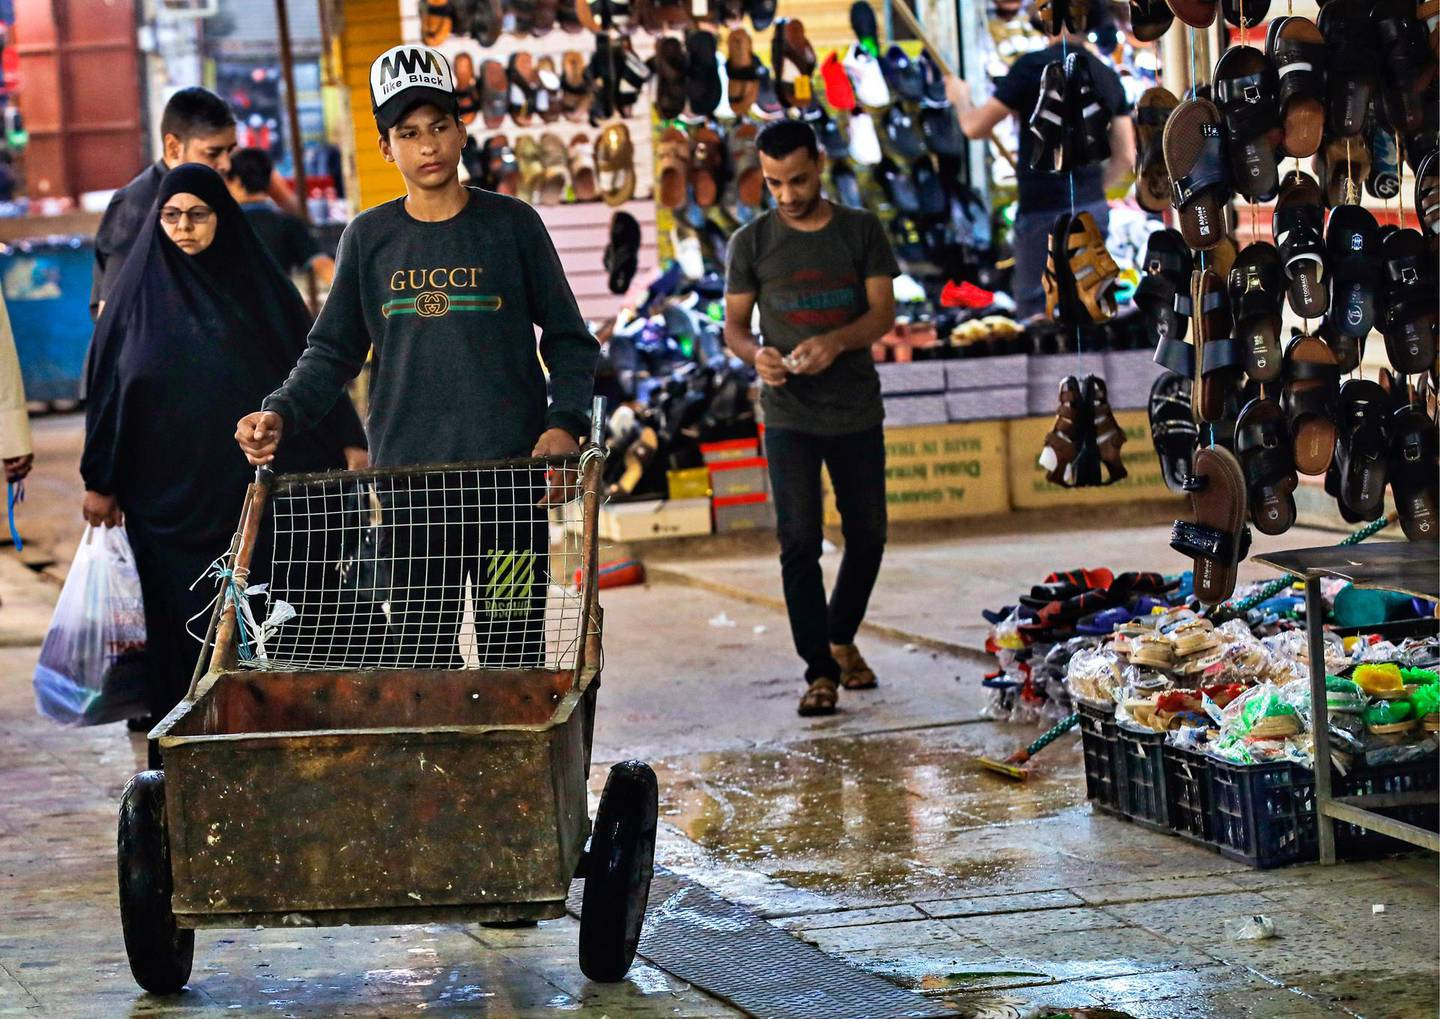 People shop at old Basra market, Iraq, Wednesday, Oct. 21, 2020.  Iraq is in the throes of an unprecedented liquidity crisis, as the cash-strapped state wrestles to pay public sector salaries and import essential goods while oil prices remain dangerously low. (AP Photo/Nabil al-Jurani)